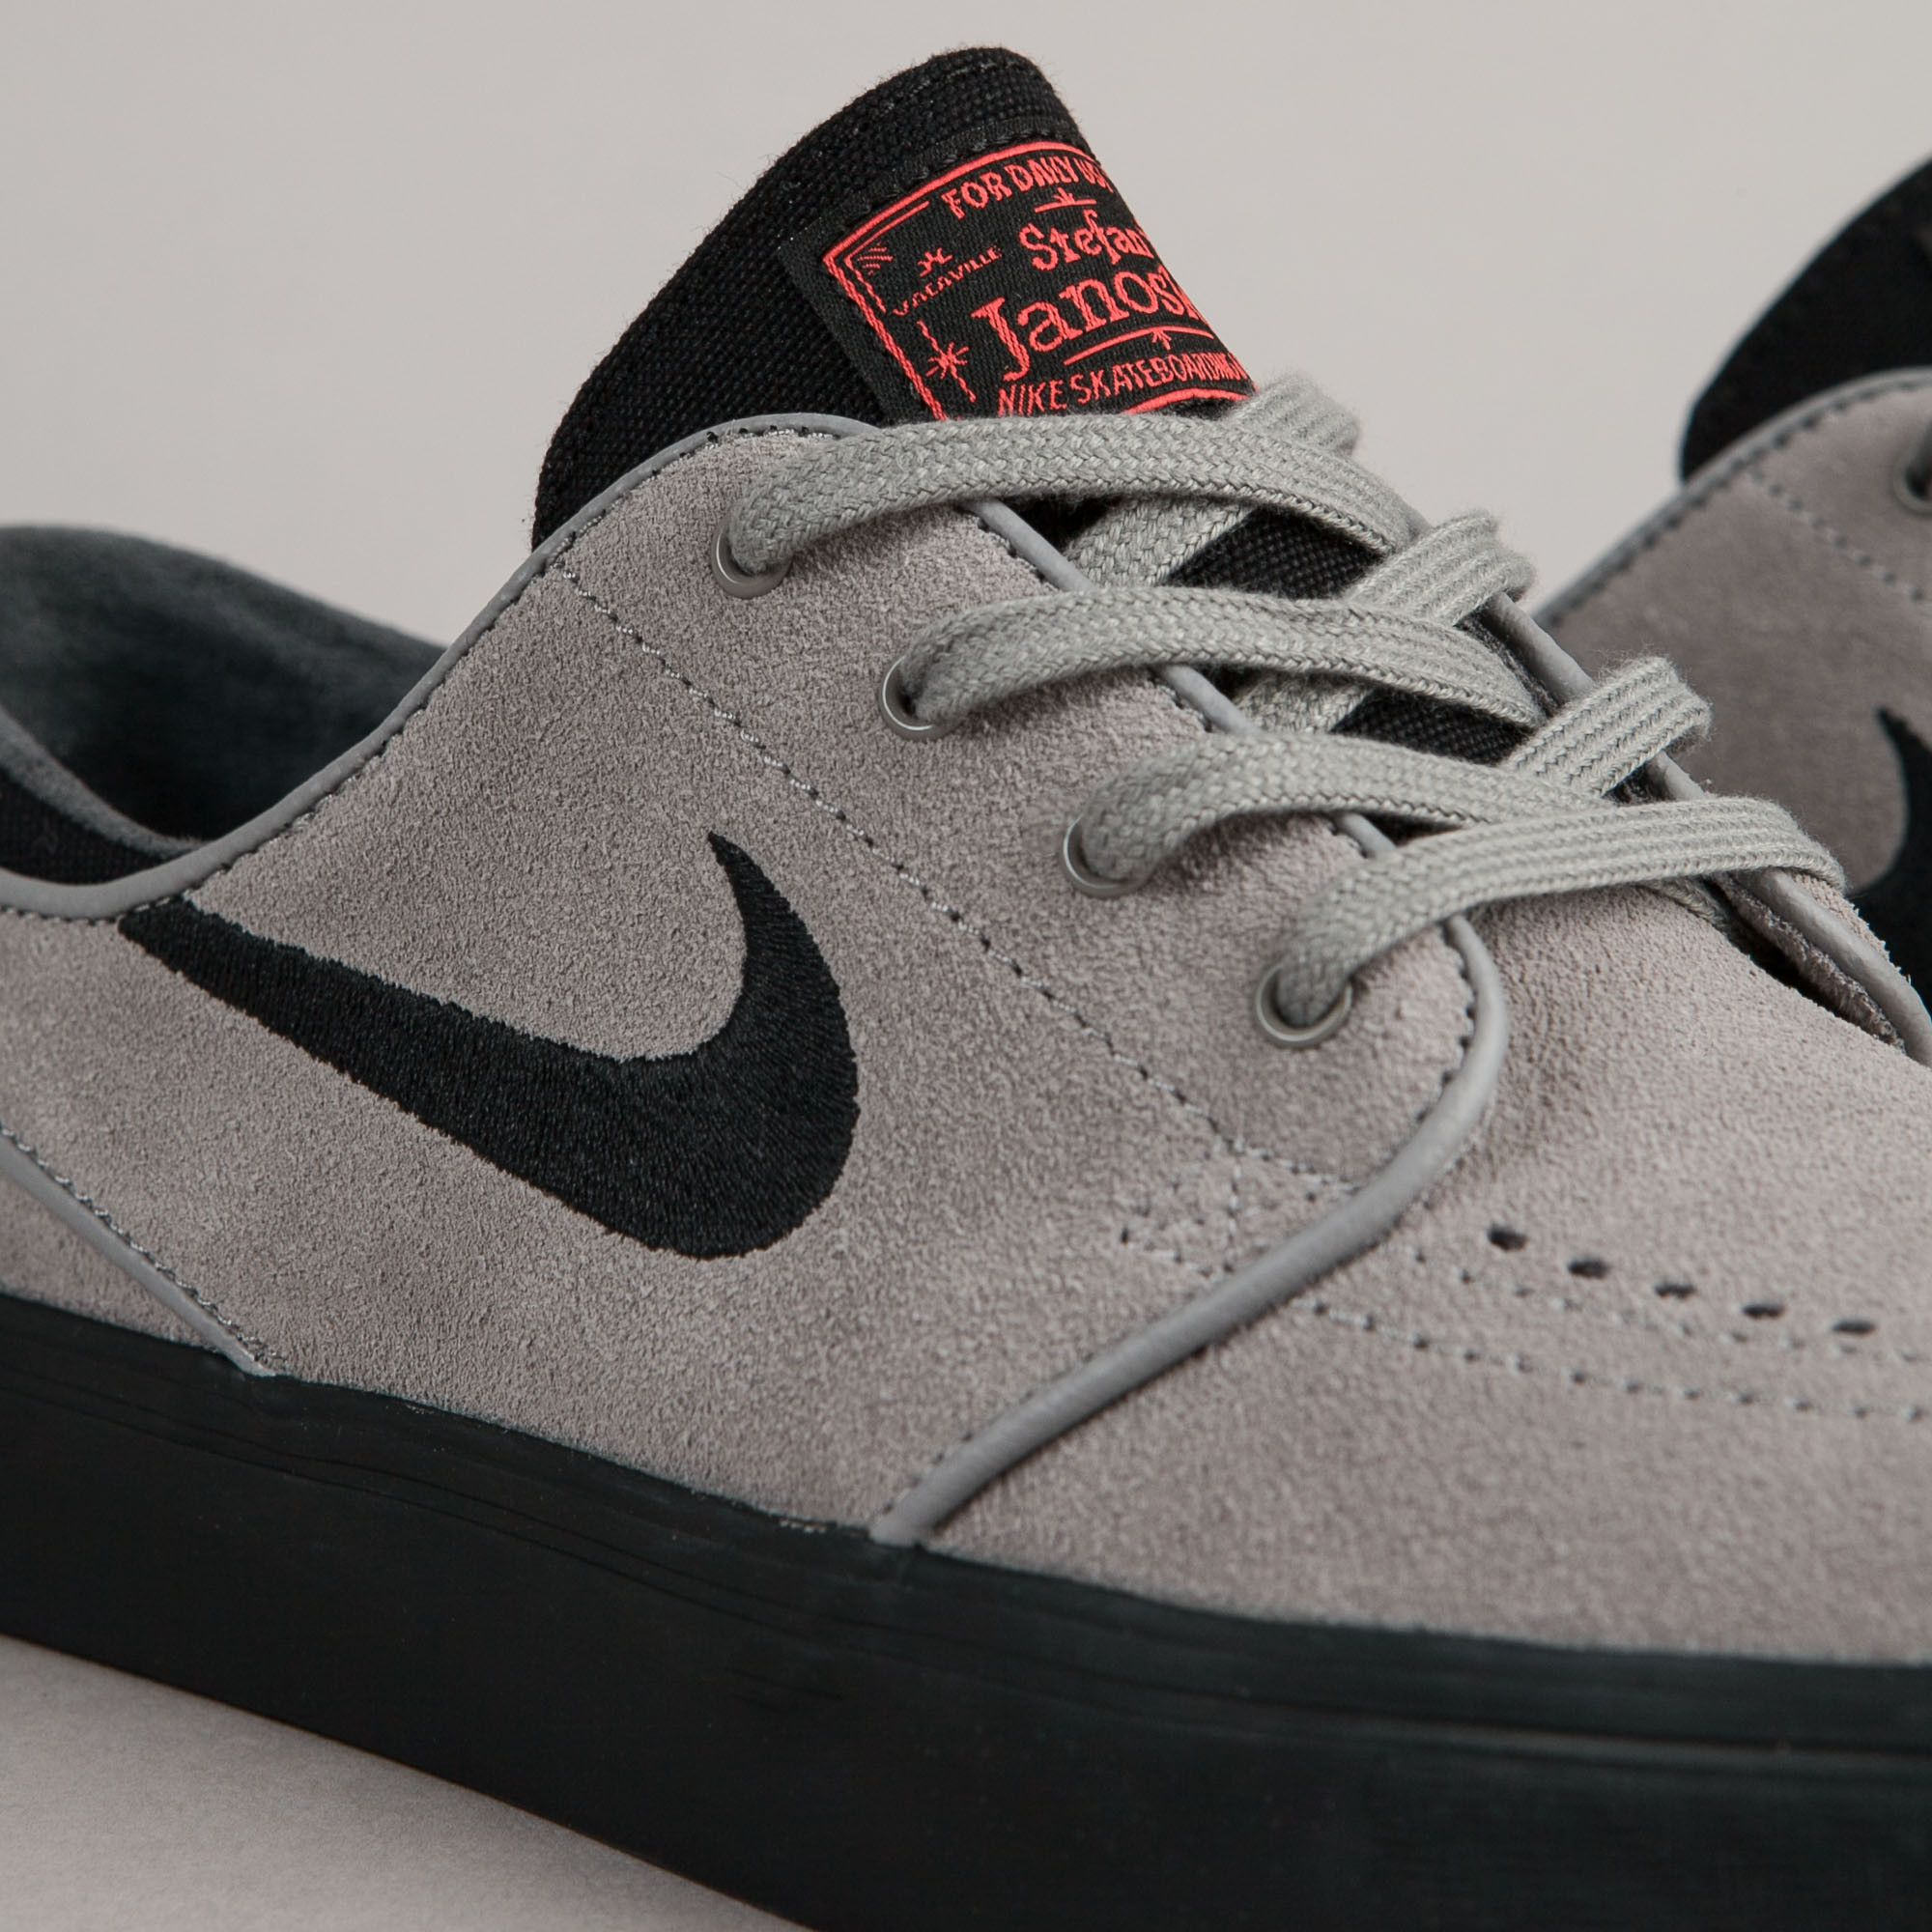 Nike SB Stefan Janoski Shoes - Dust   Black - Ember Glow - White ... d72ef6bbc